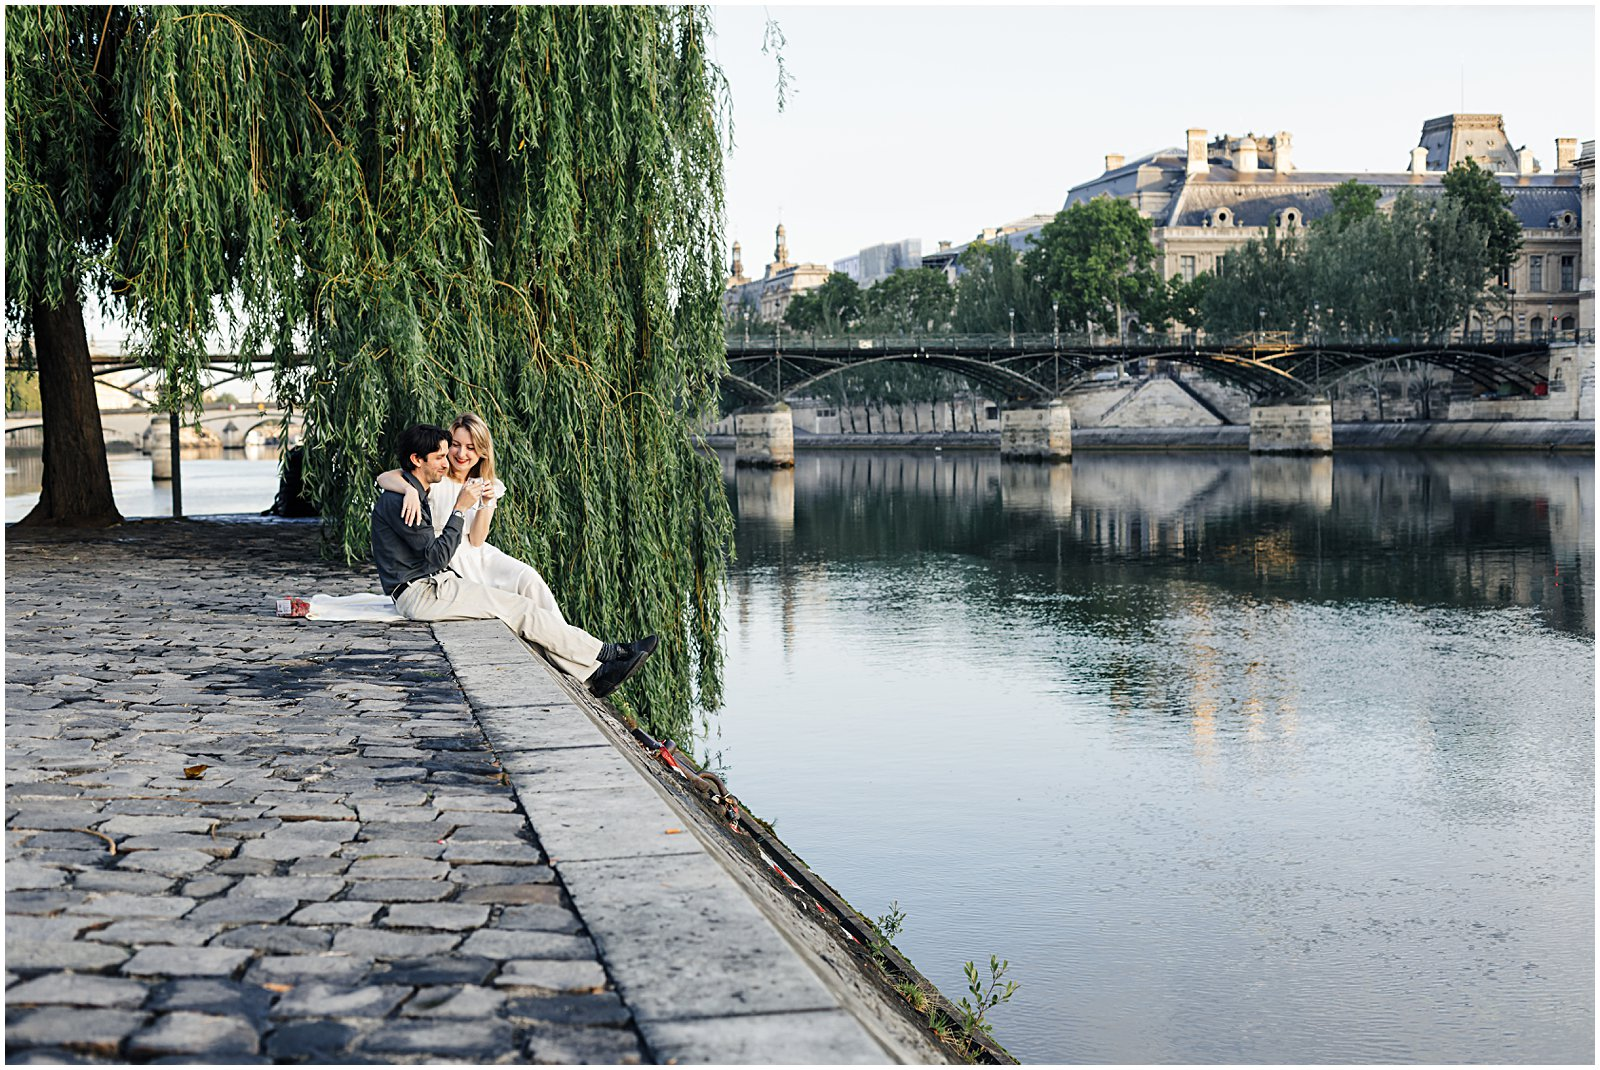 couple picnicing along the Pont Neuf willow tree in Paris